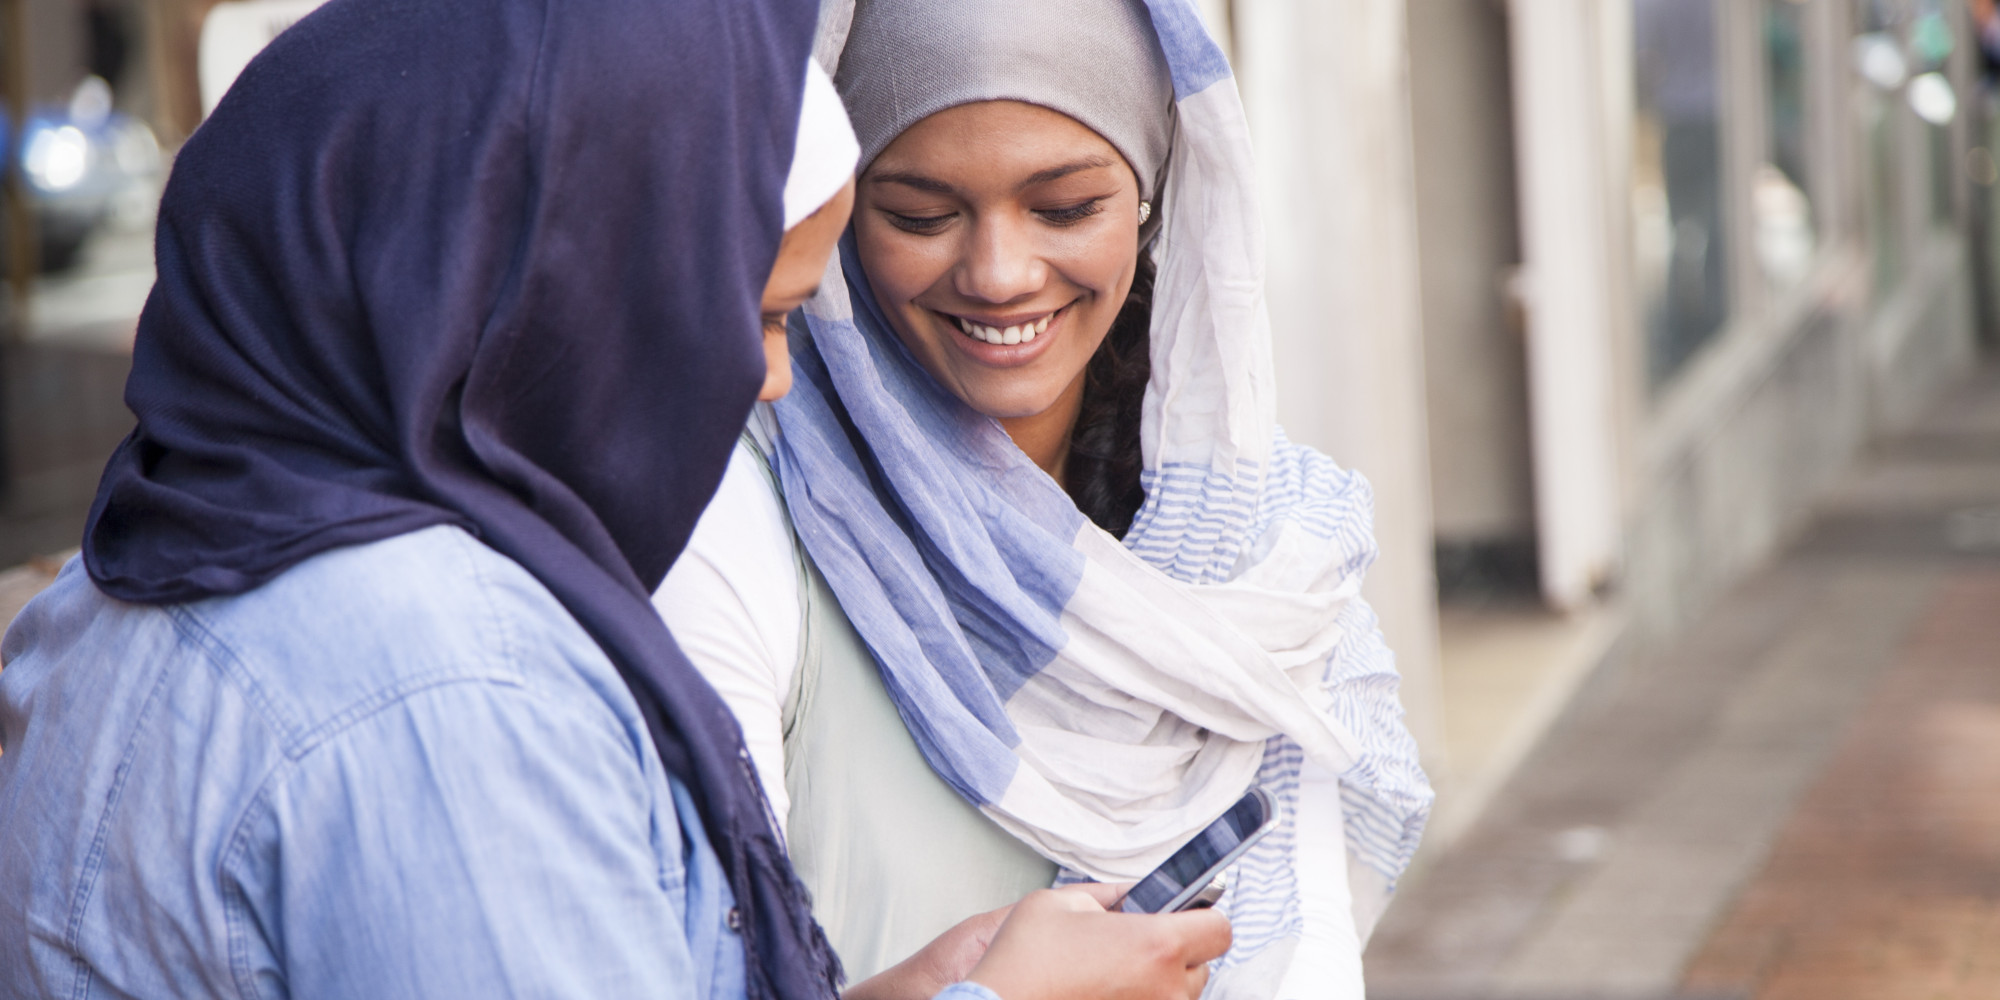 beaverdale muslim girl personals Muslim dating at muslimacom sign up in a misunderstanding of what online dating is muslim online dating opens up a whole new a girl aged 23 years old.